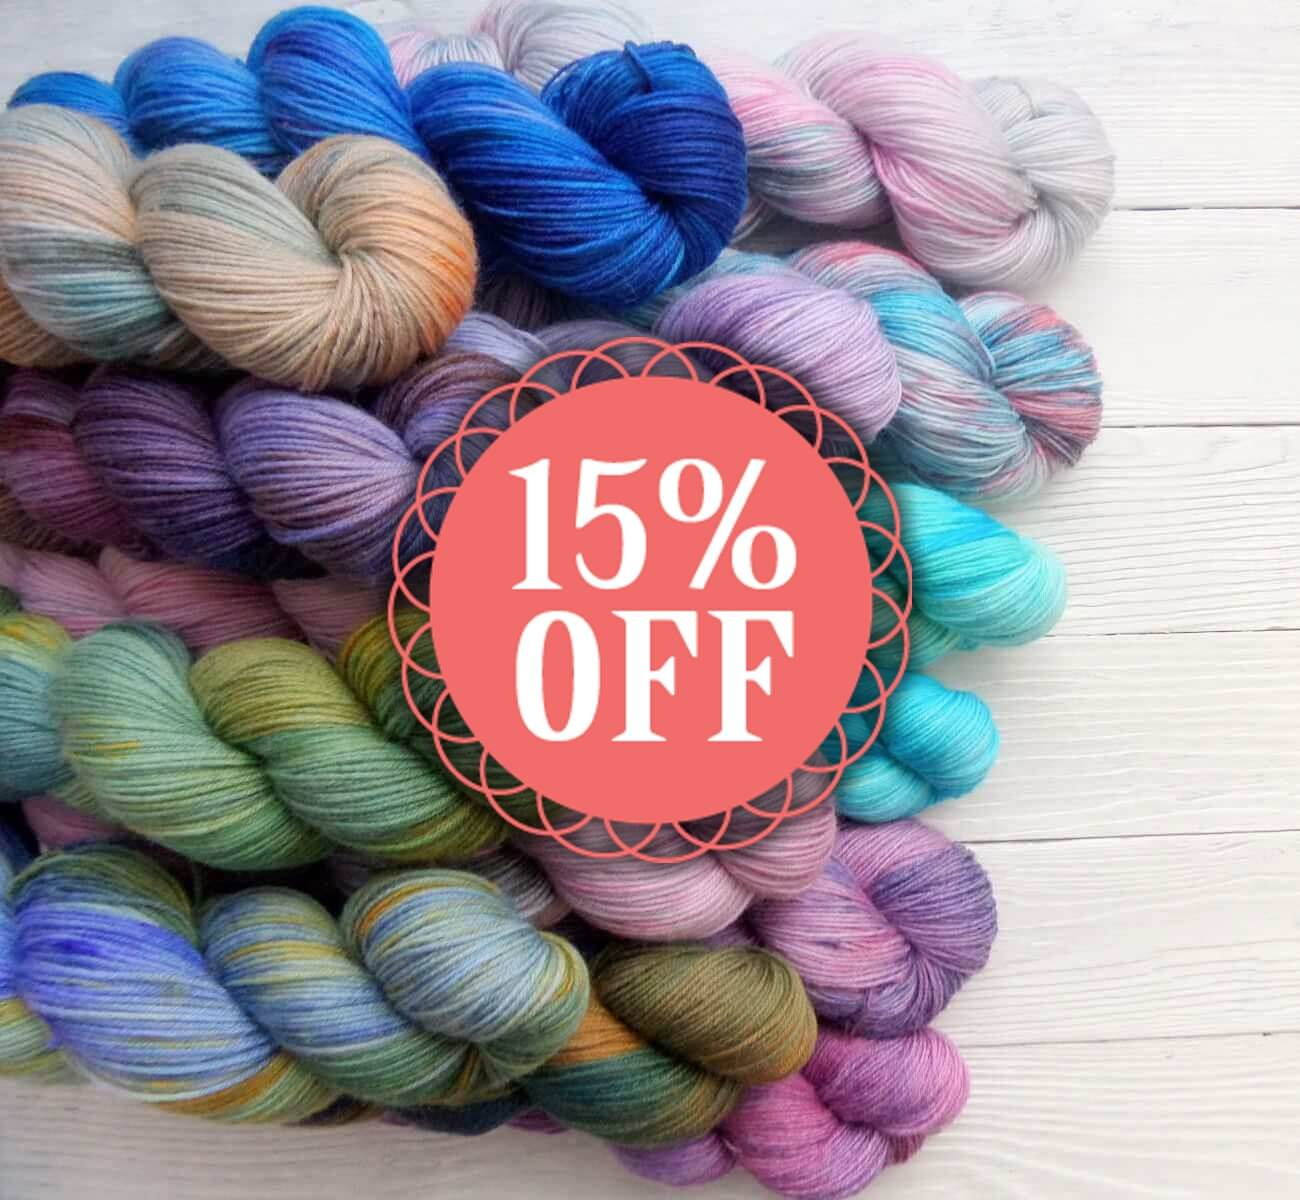 woodico.pro summer sale yarn - Summer Sale Yarn